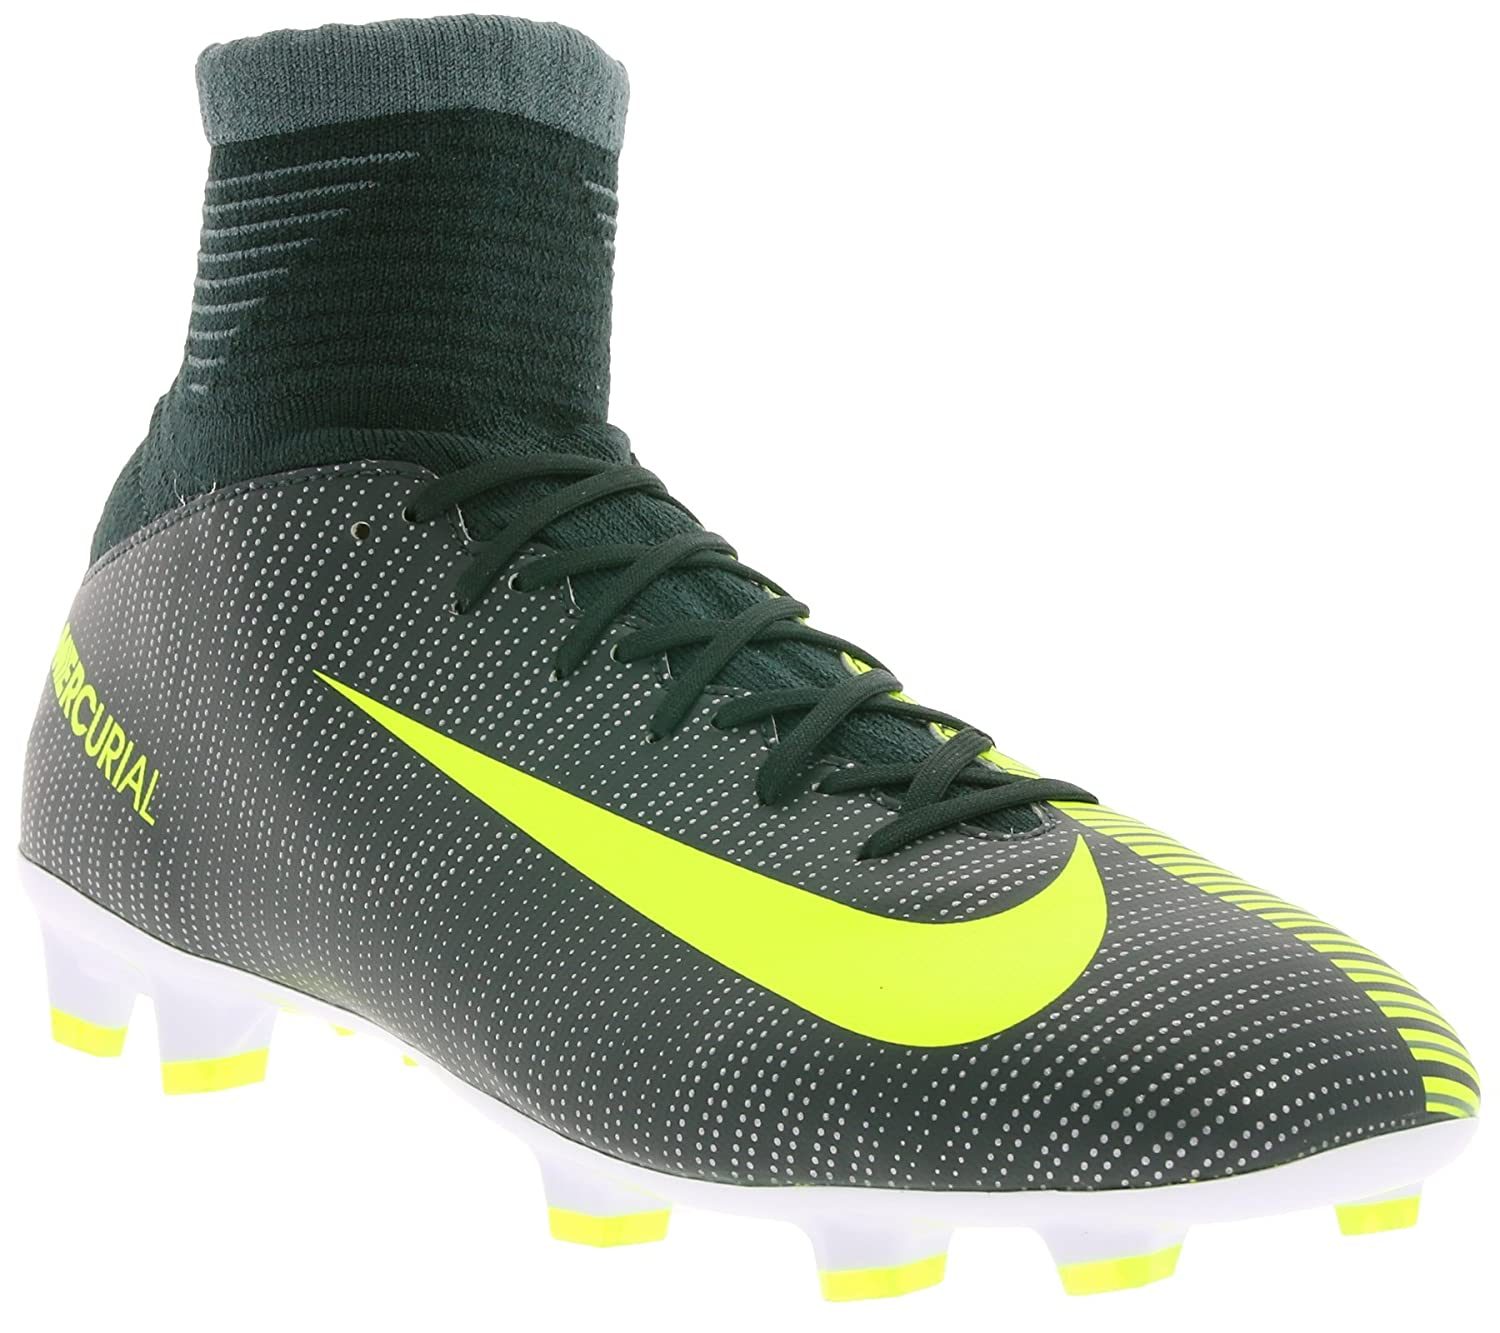 Nike 852483-376, Chaussures de Football Mixte Adulte 38 EU